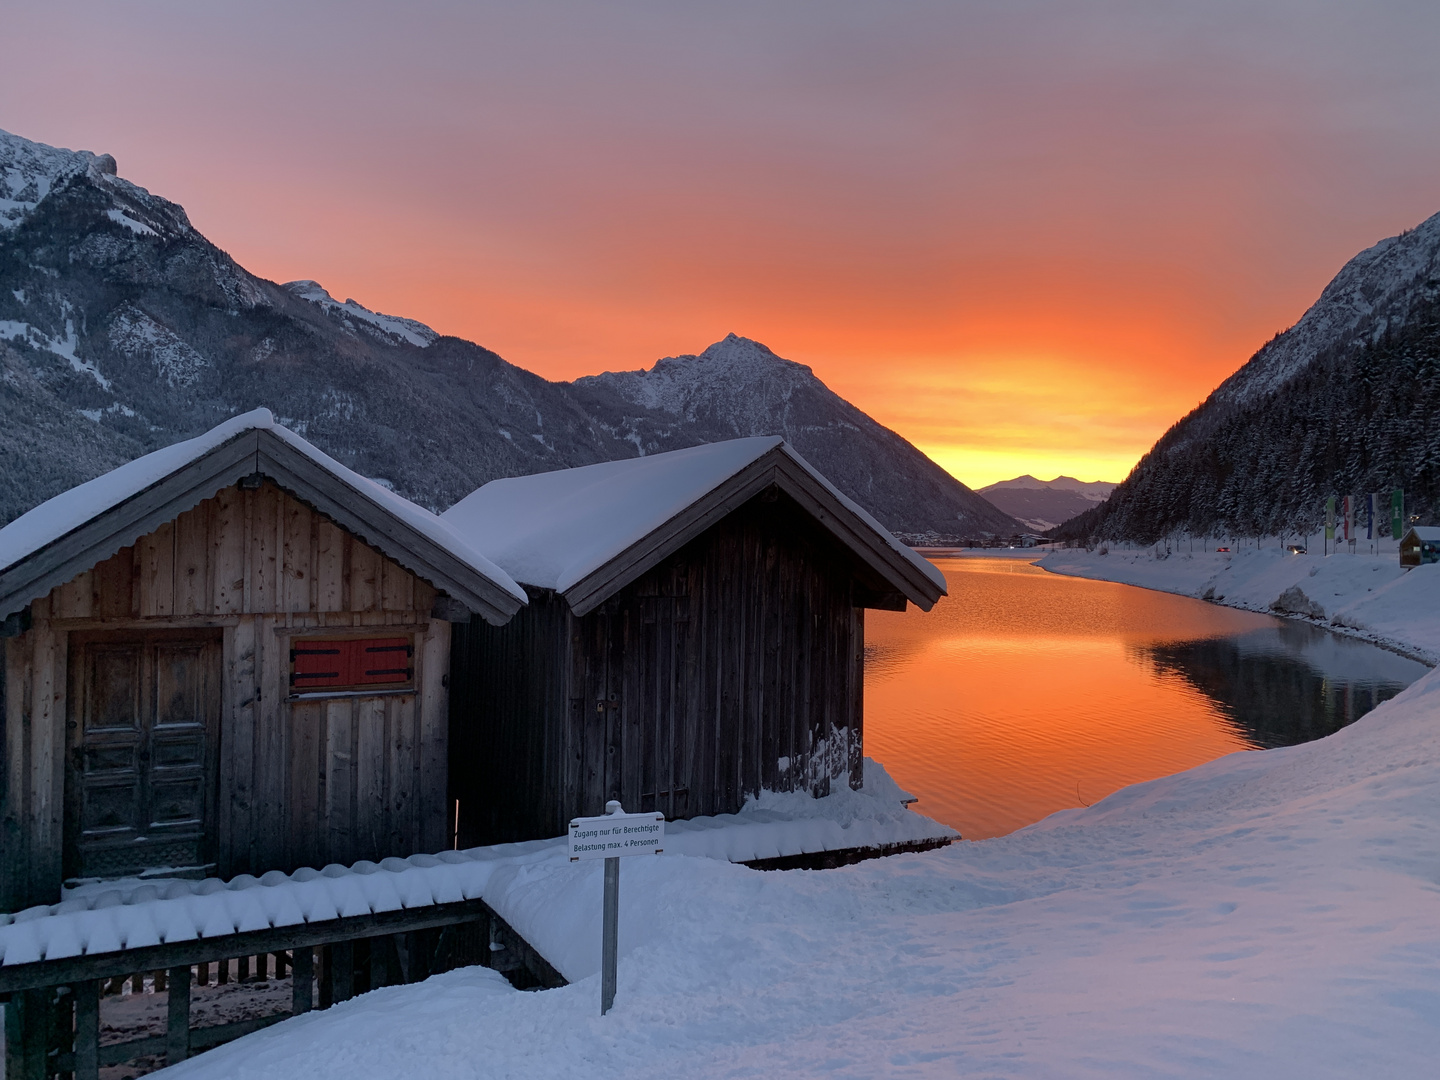 Morgenrot am Achensee.